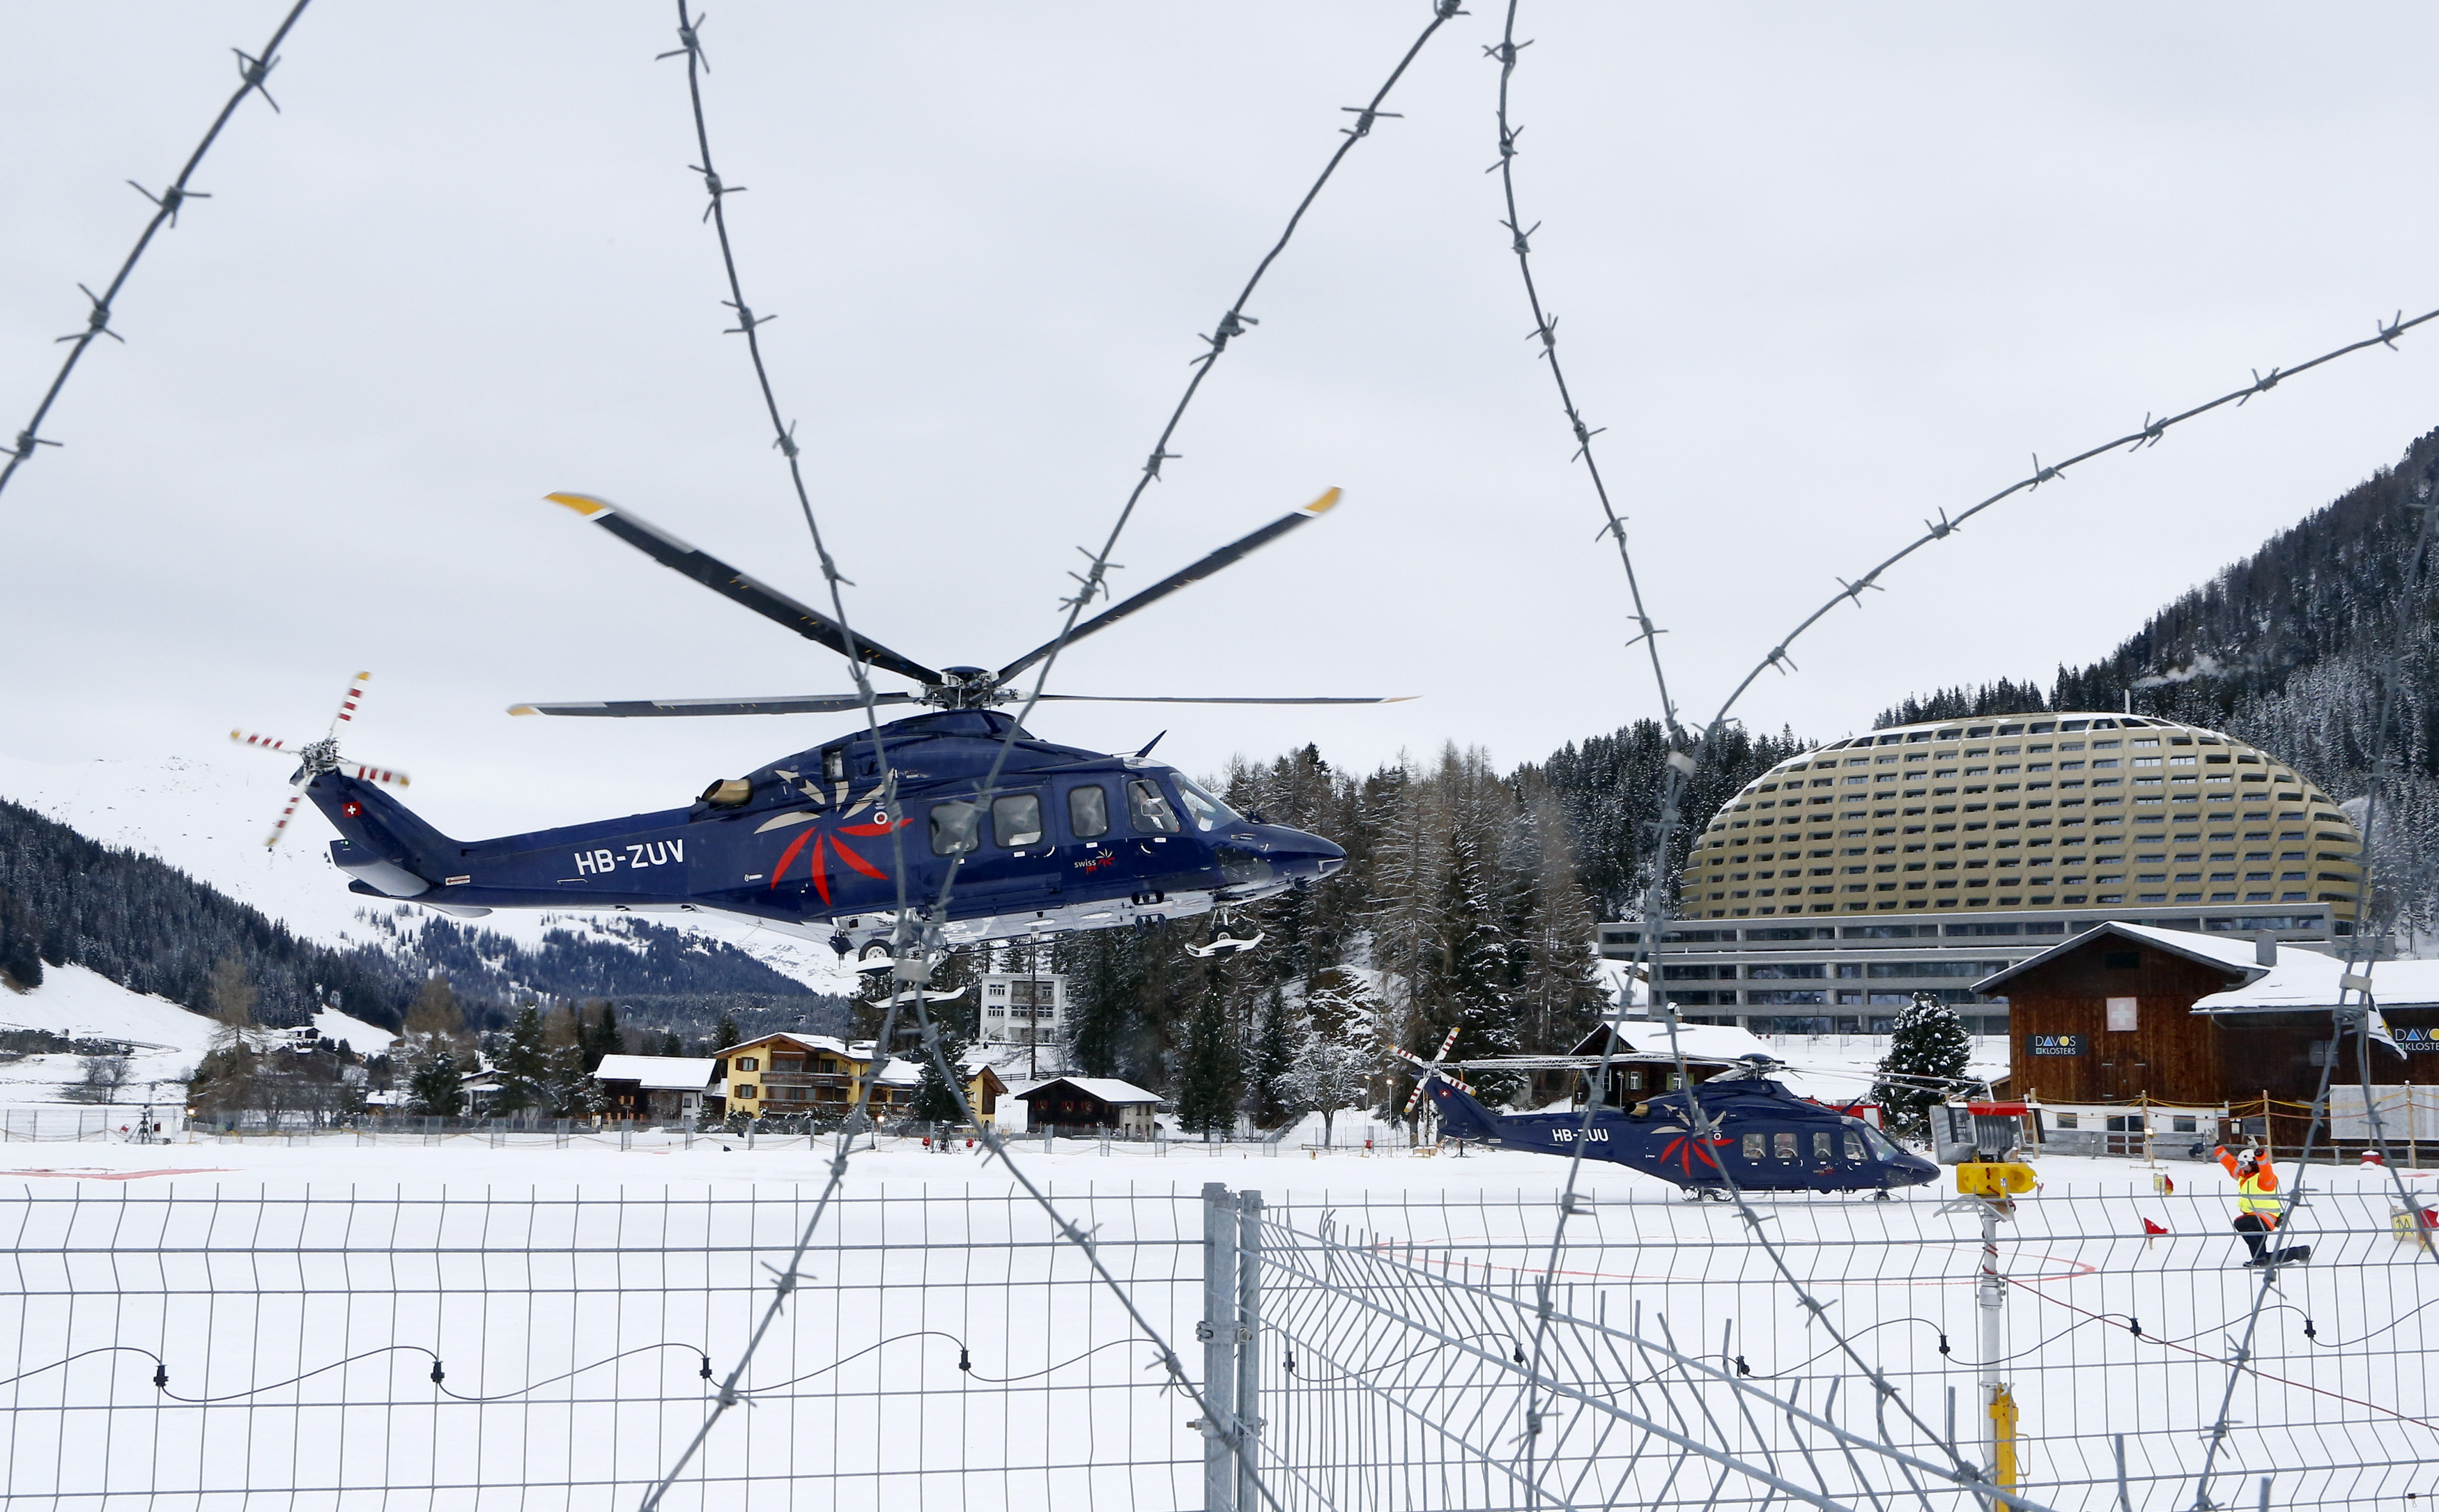 A participant arrives by private helicopter for the World Economic Forum (WEF)  in the Swiss mountain resort of Davos January 20, 2015. More than 1,500 business leaders and 40 heads of state or government will attend the January 21-24 meeting of the World Economic Forum (WEF) to network and discuss big themes, from the price of oil to the future of the Internet. This year they are meeting in the midst of upheaval, with security forces on heightened alert after attacks in Paris, the European Central Bank considering a radical government bond-buying programme and the safe-haven Swiss franc rocketing.    REUTERS/Ruben Sprich (SWITZERLAND  - Tags: POLITICS BUSINESS)   - RTR4M517